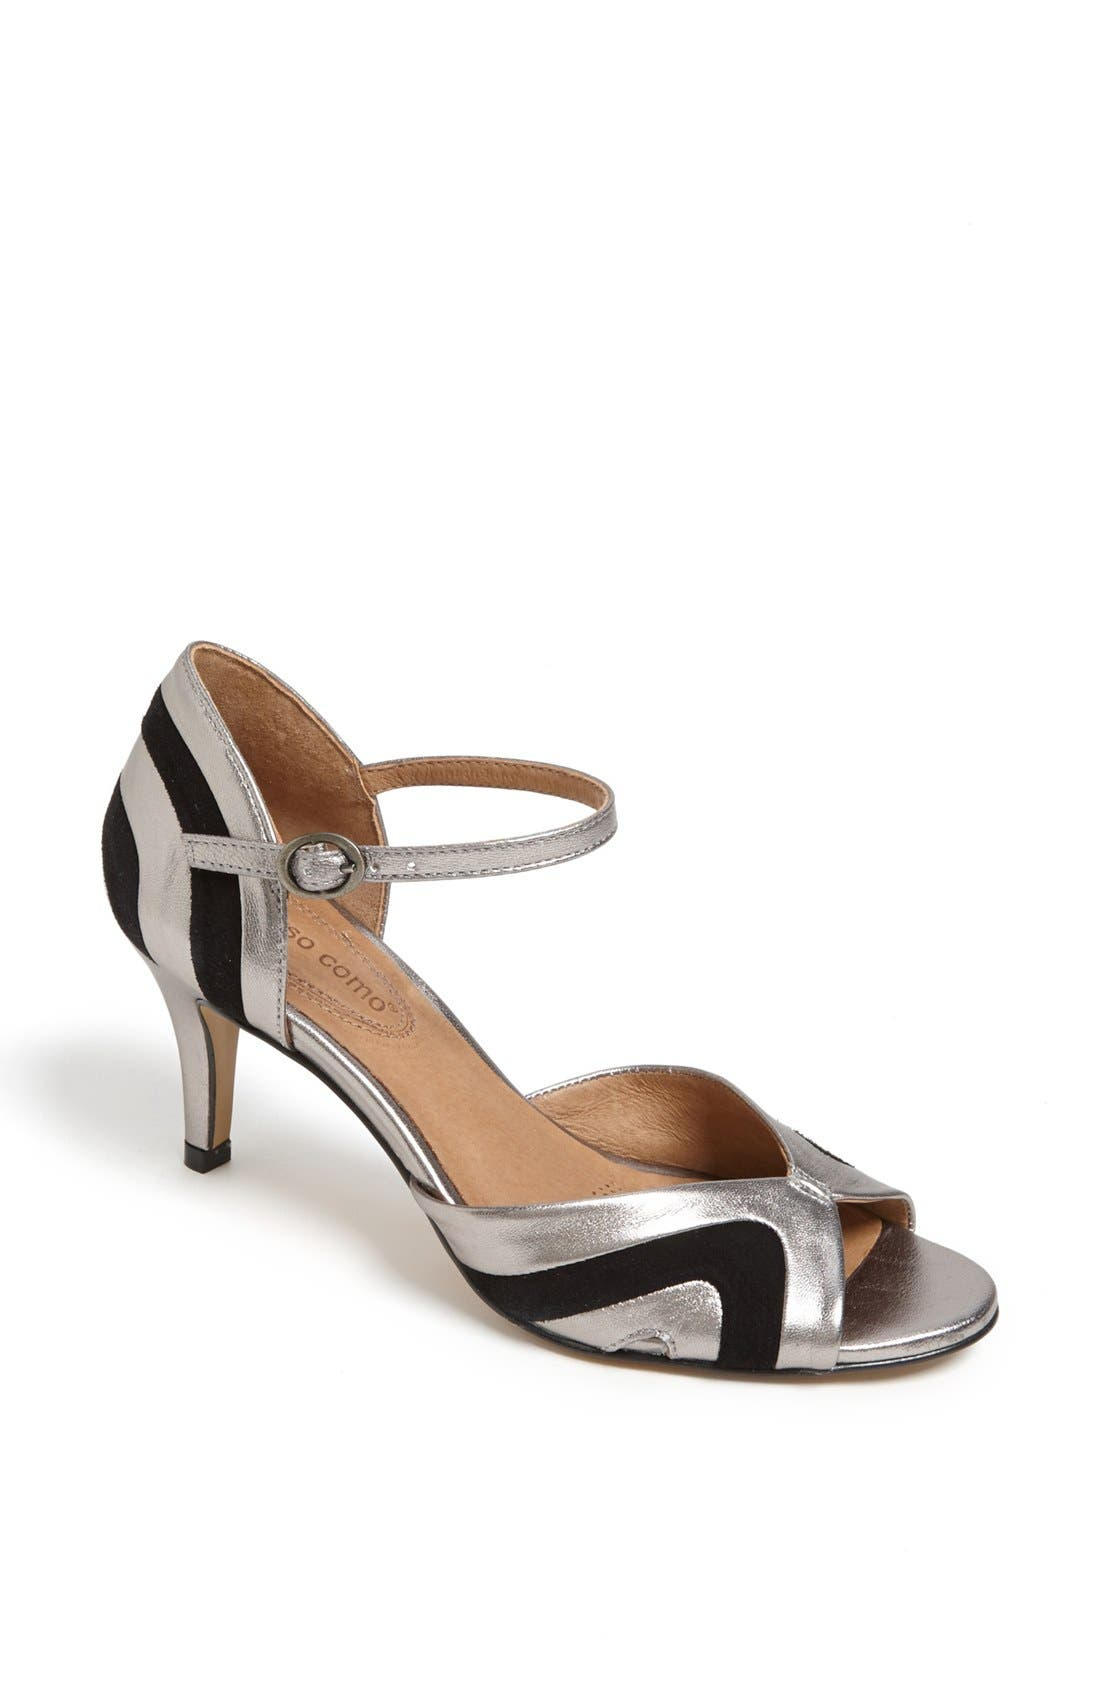 Main Image - Corso Como 'Jesuit' Peep Toe Leather Pump